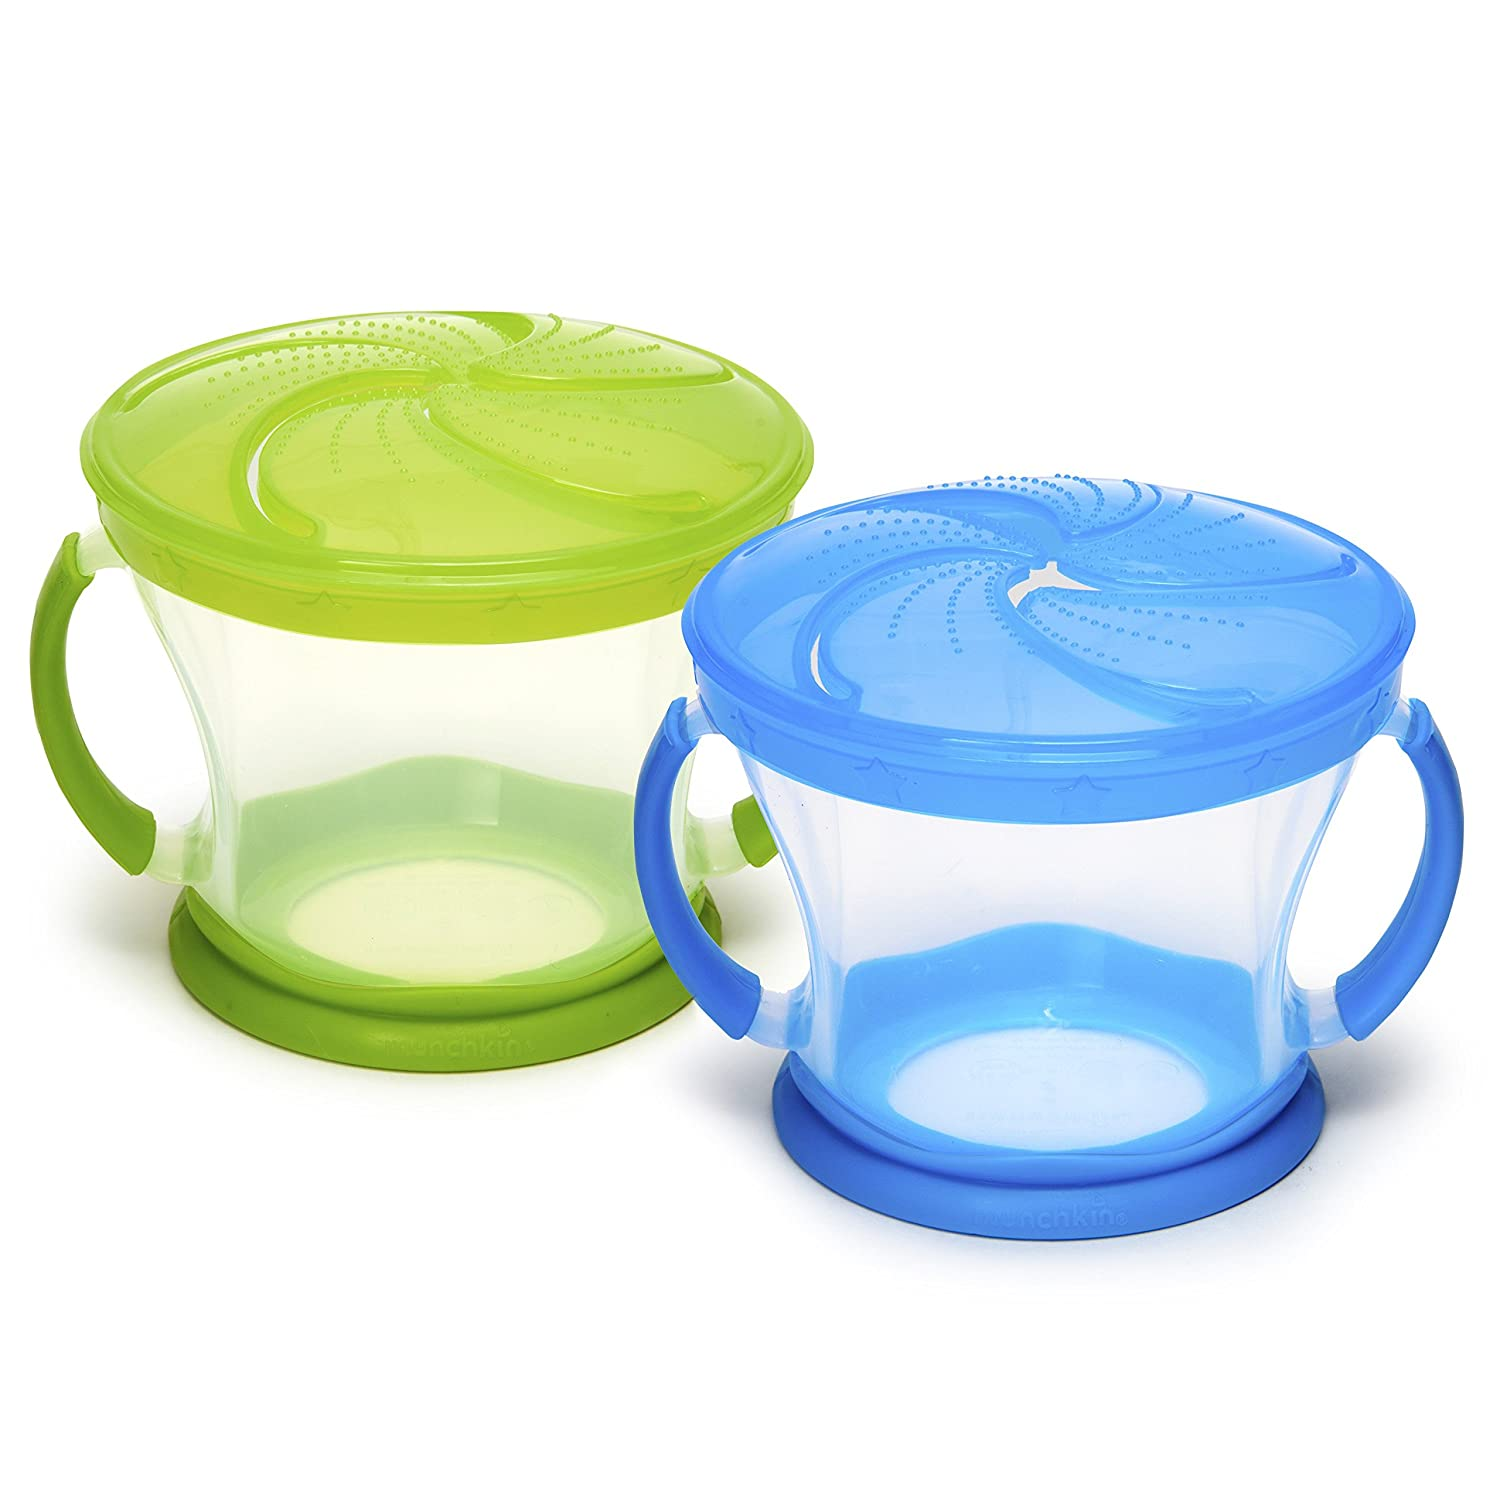 Munchkin 2 Piece Snack Catcher, Blue/Green 10861